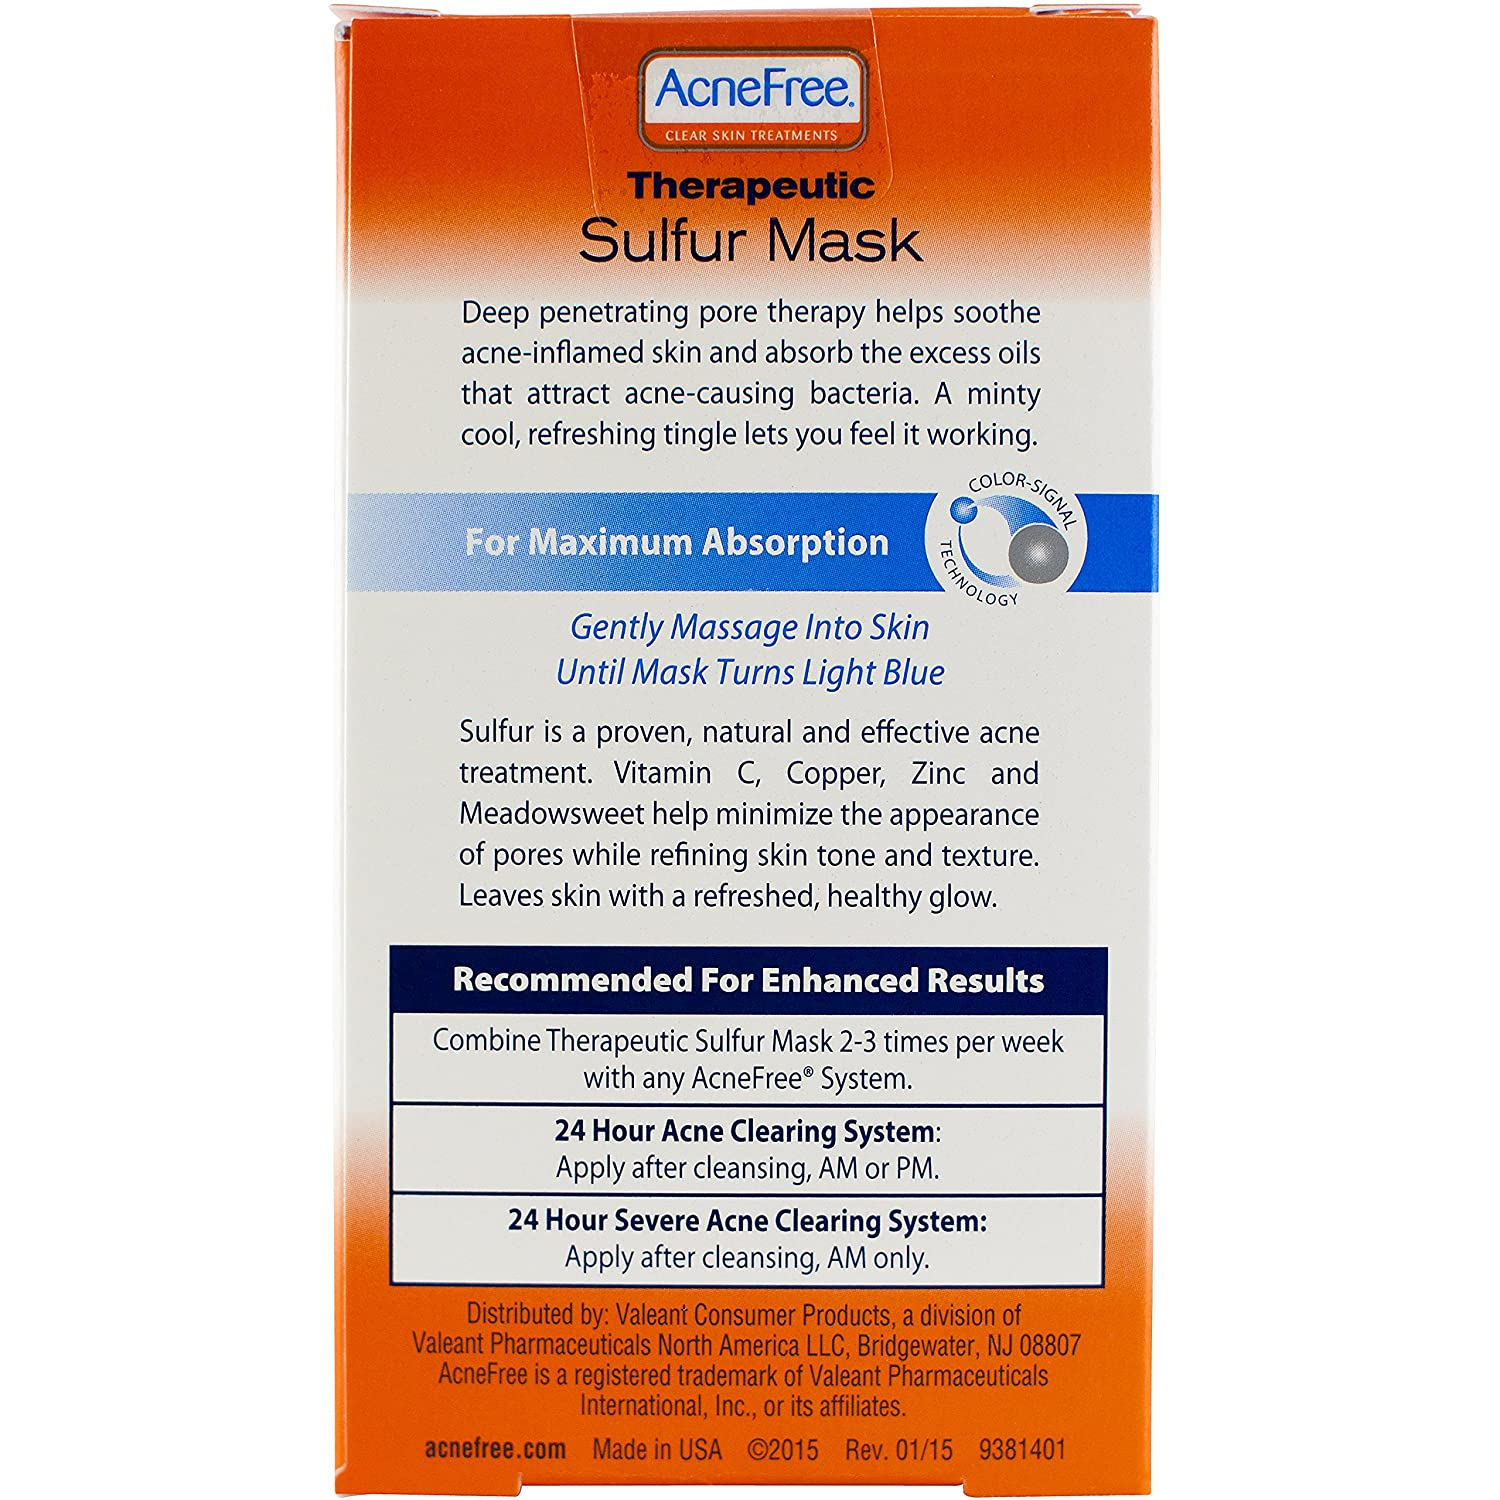 Amazon.com : AcneFree Sulfur Mask 1.7 oz with Vitamin C and Copper ...